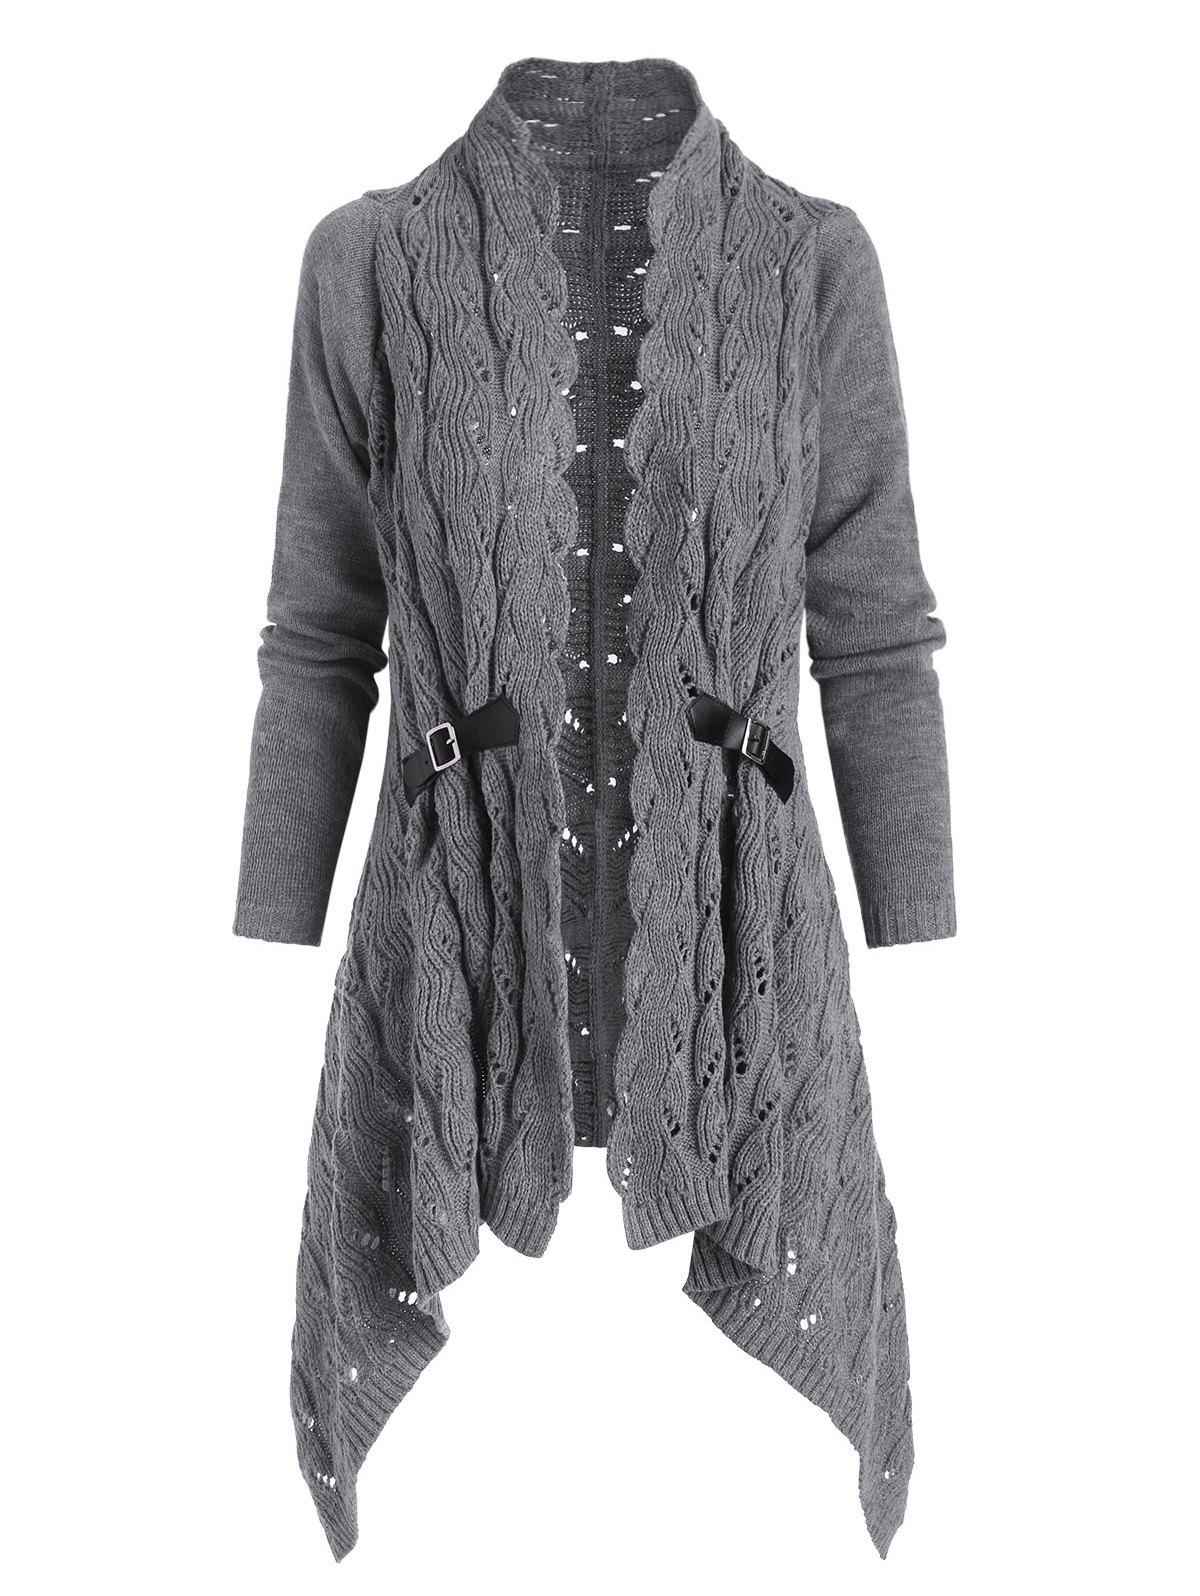 Hot Open Knit Buckle Embellished Asymmetrical Cardigan